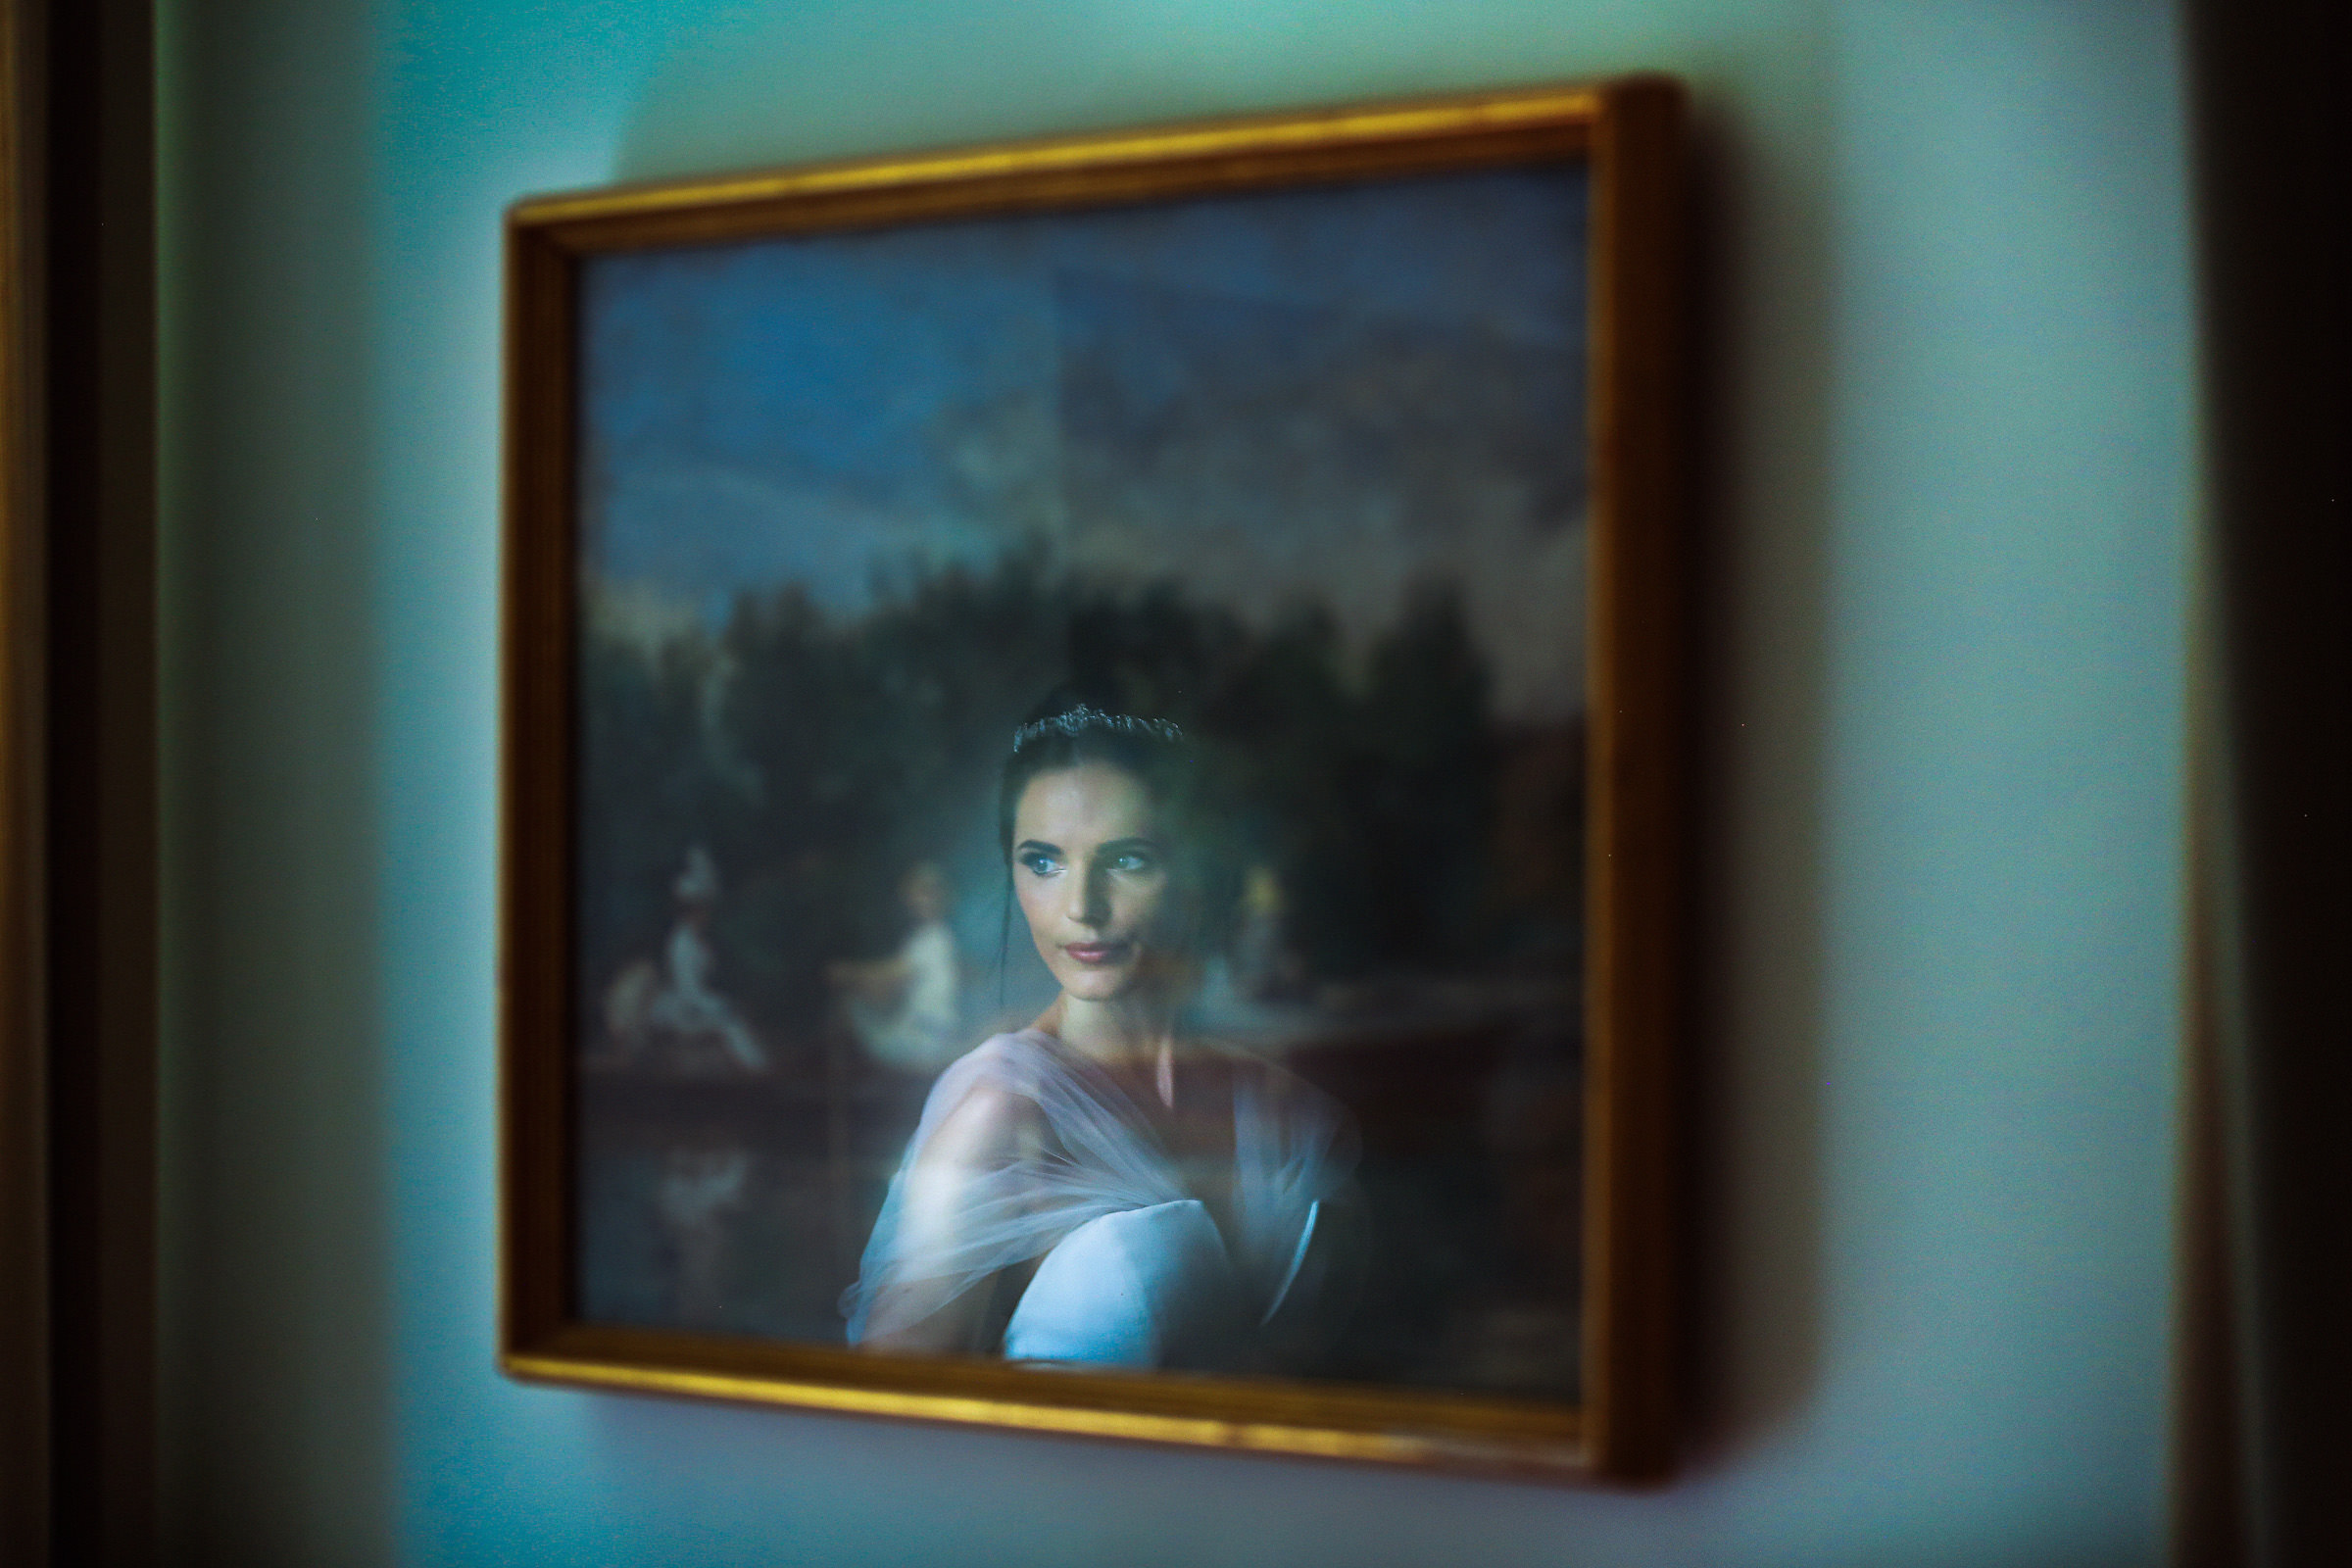 Reflection of bride in framed photo on wall, by Franck Boutonnet